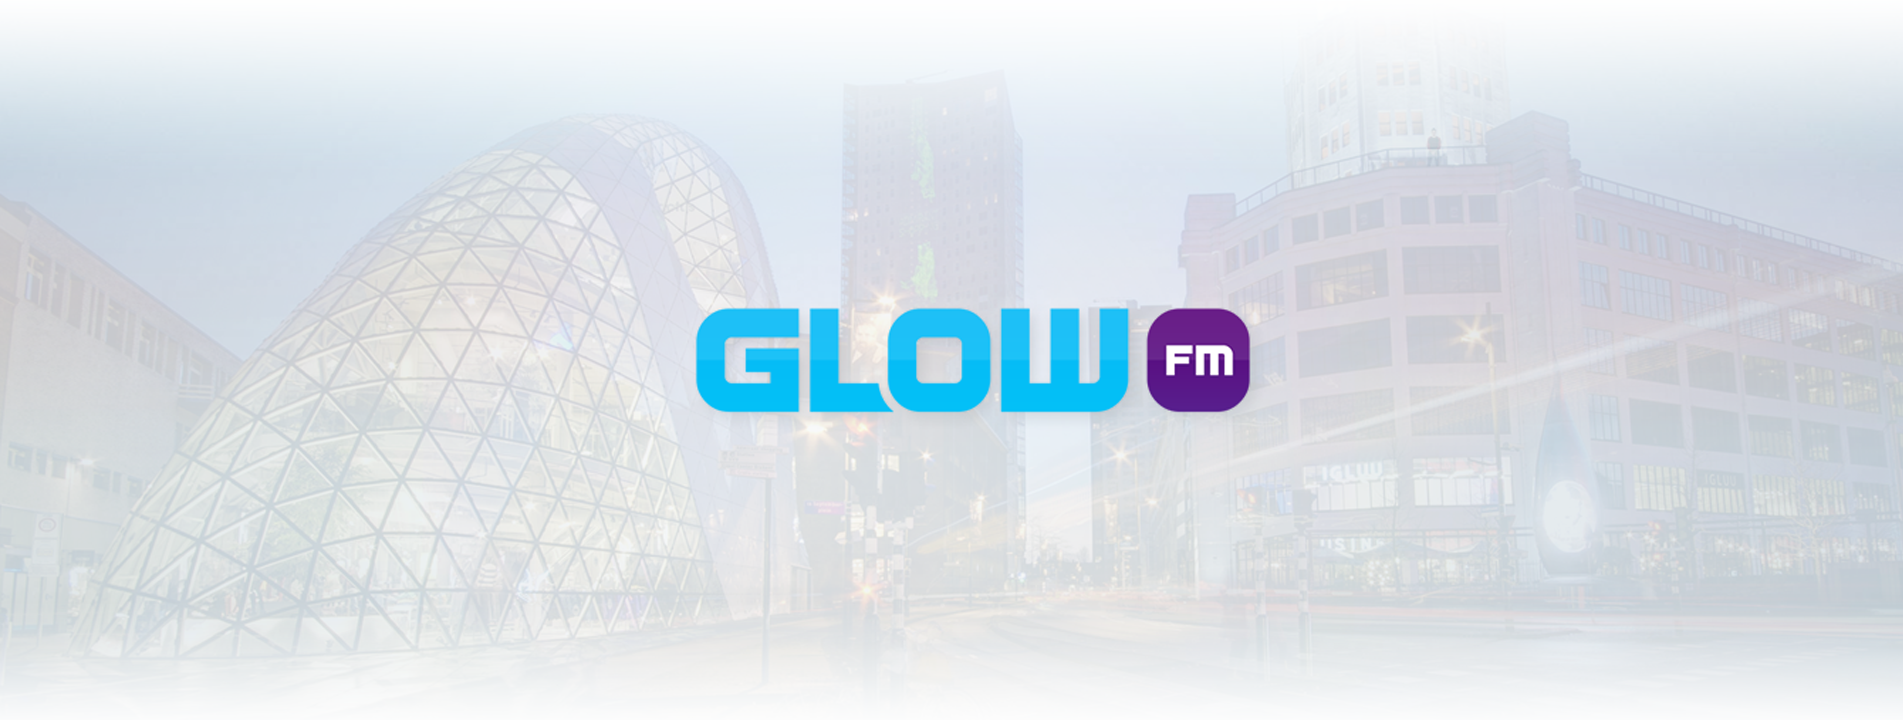 Glow FM City skyline slider 2